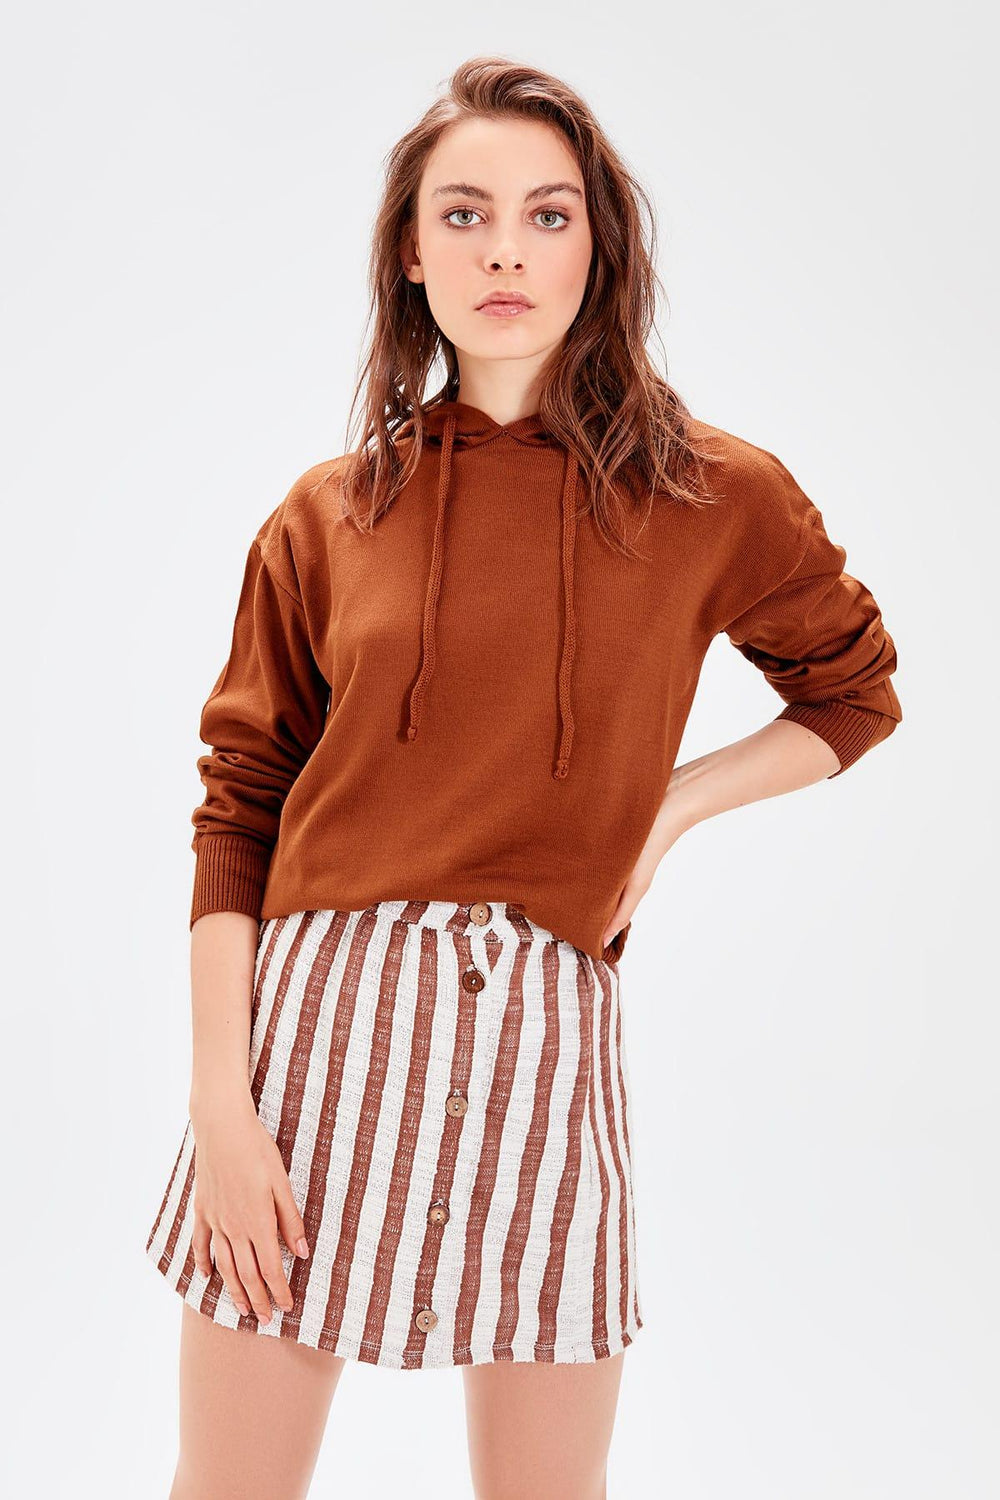 Miss Zut Miss Zut Brown Knitted Skirt Miss Zut &CO